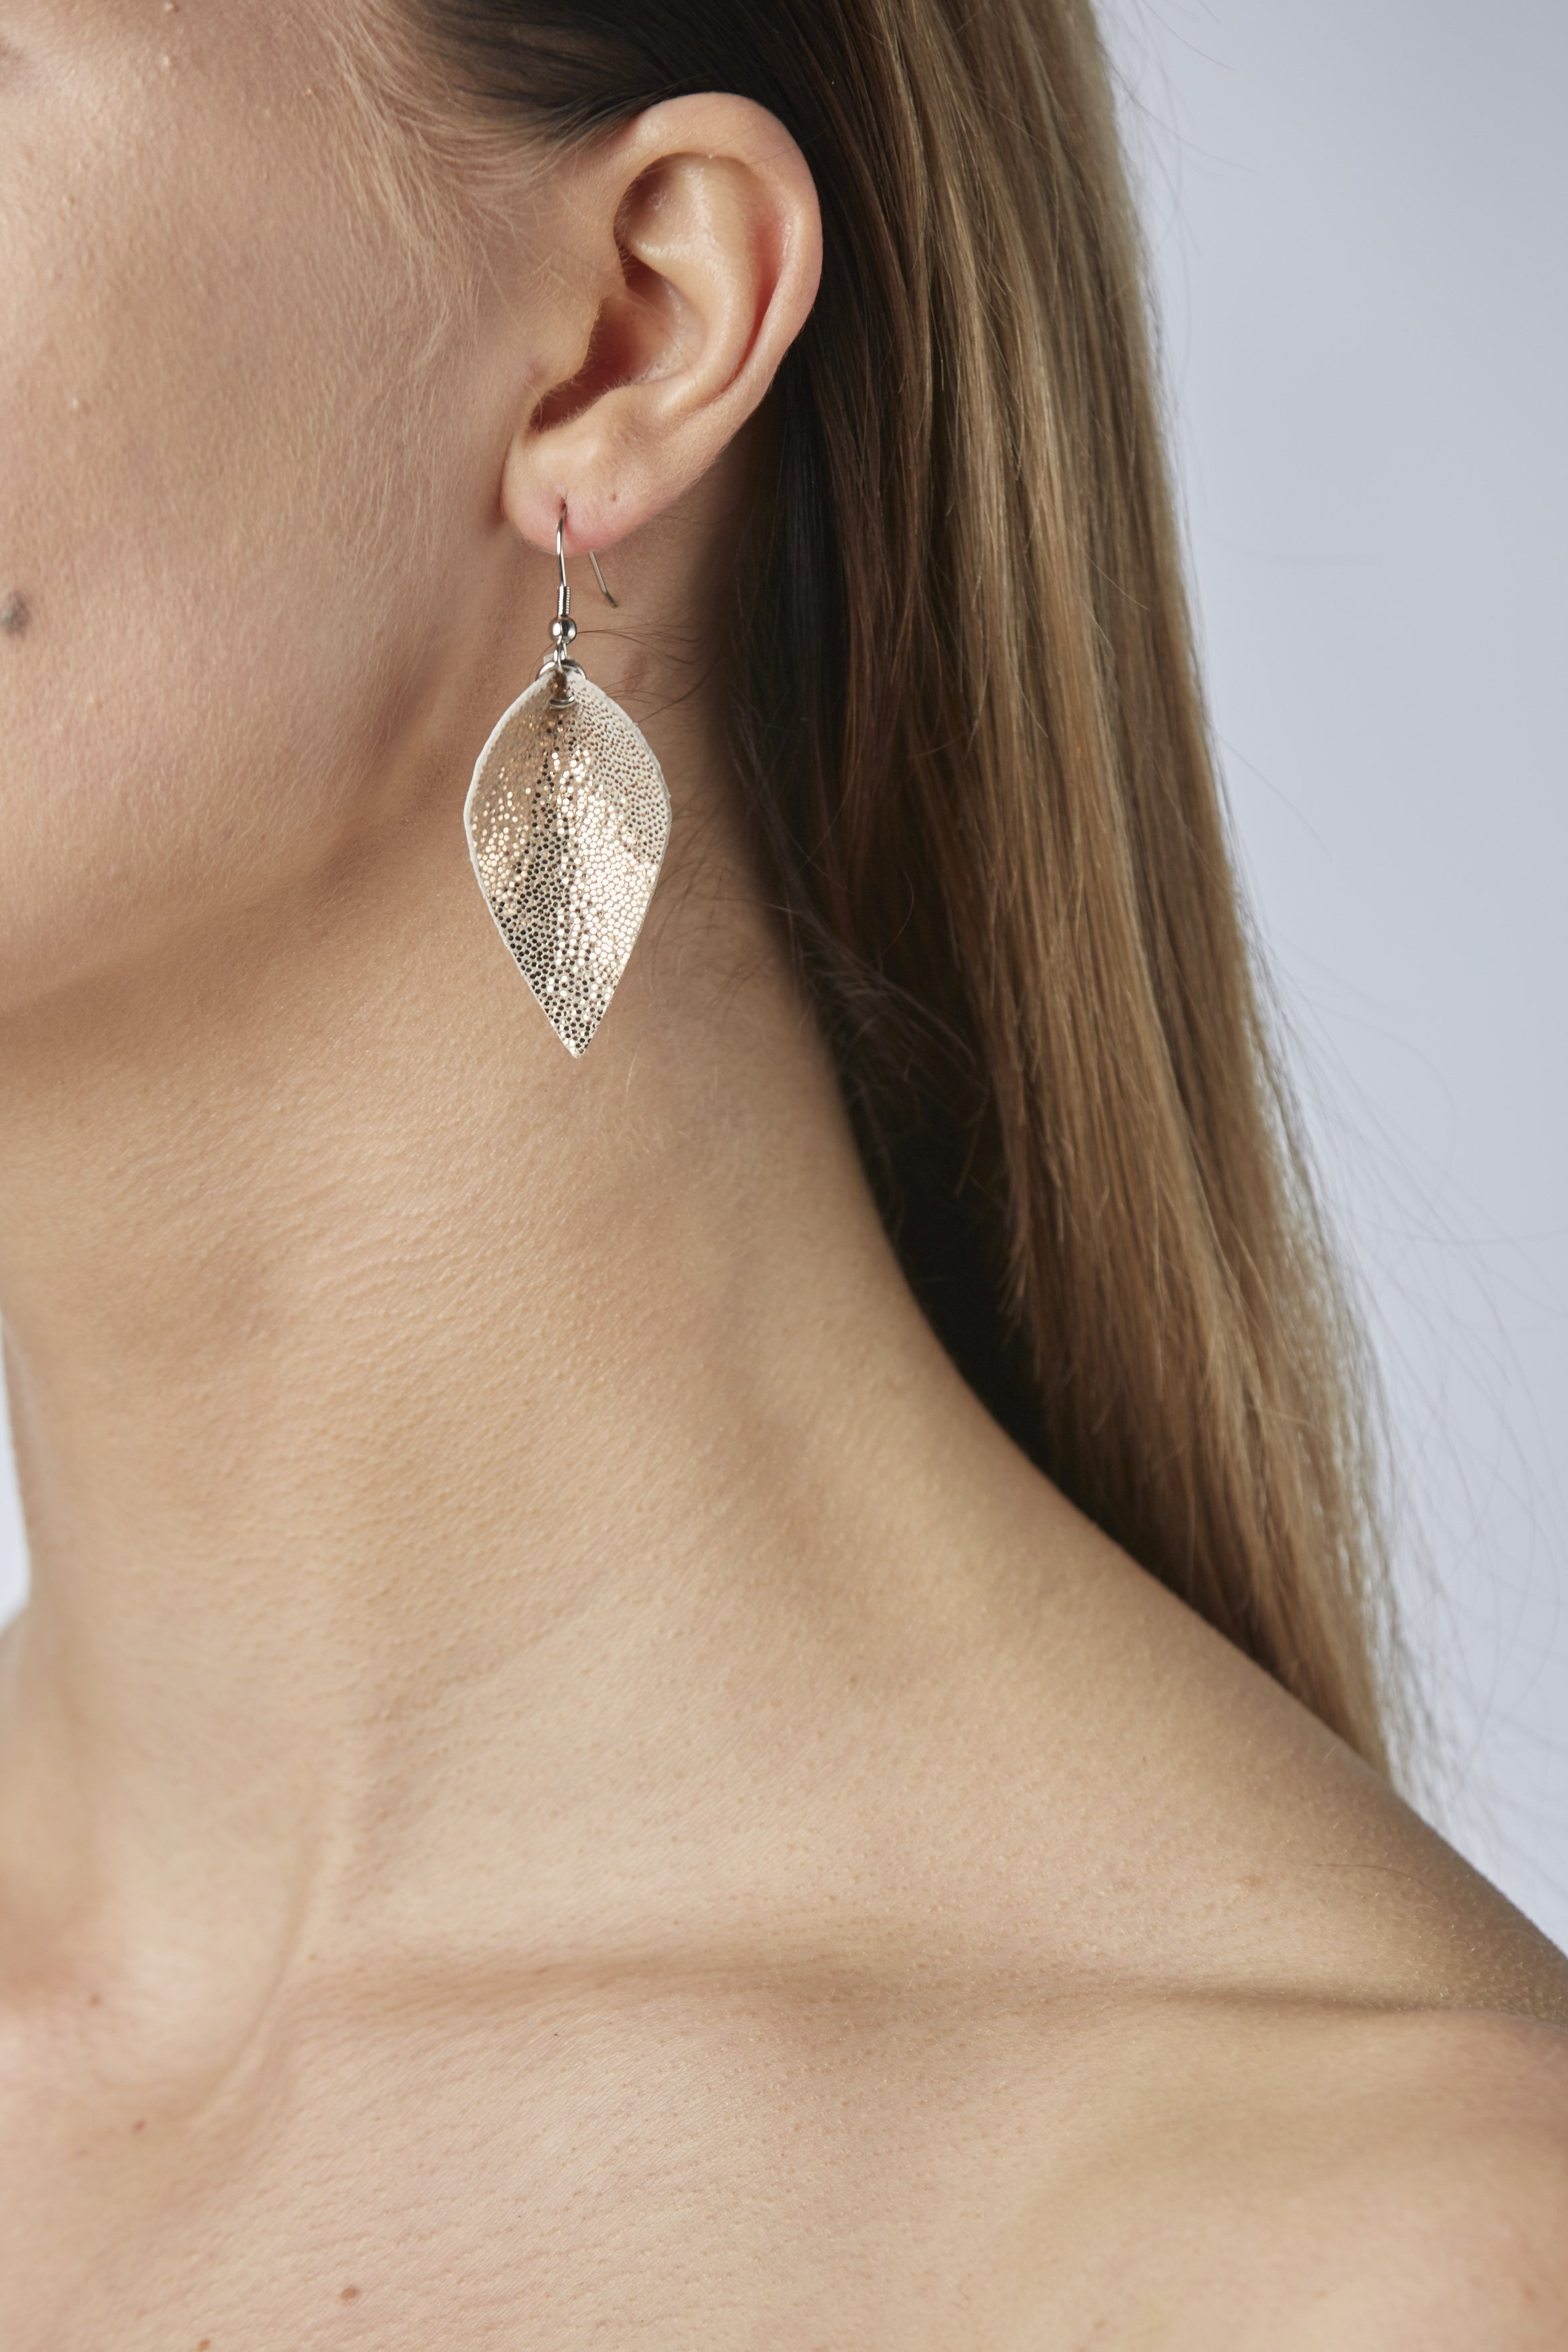 Lumme Petite earrings in glitter gold are inspired by the most beautiful decoration of Finland´s lakes, the water lily– Lumme.These lightweight exclusive Italian goat leather made elegant earrings size is ideal for everyone to wear.